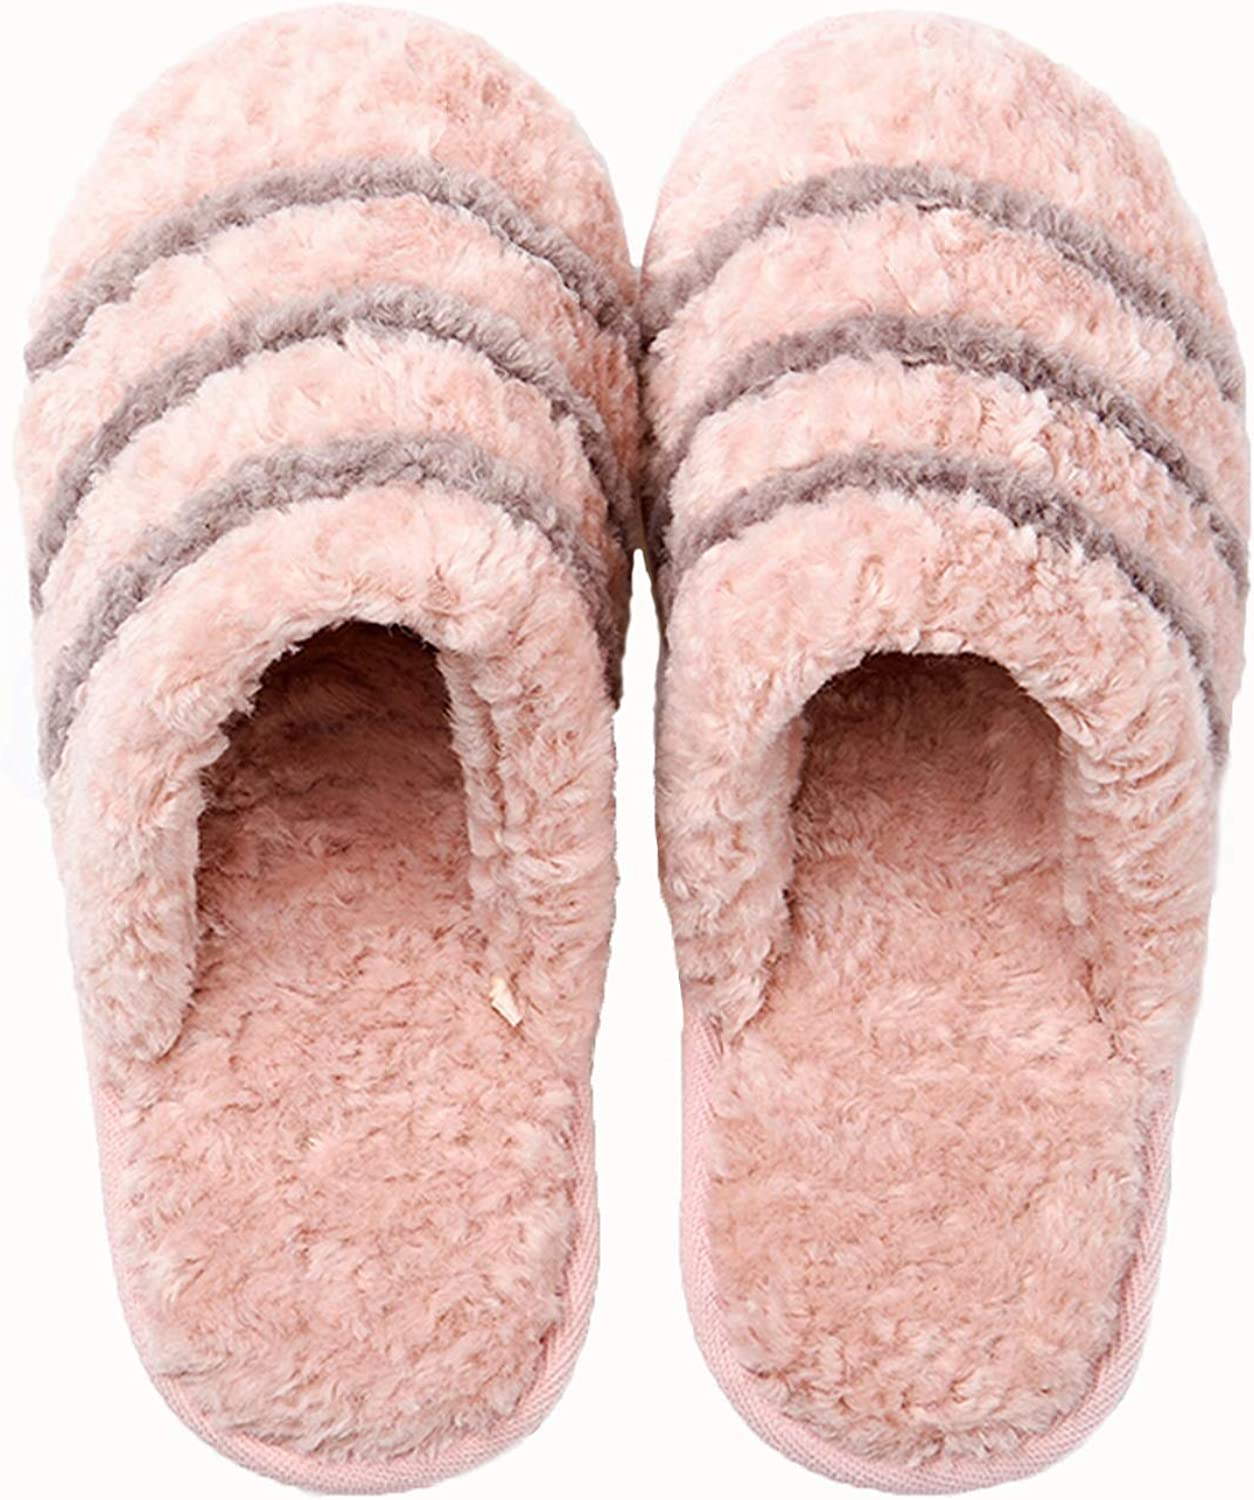 Winter Cotton Slippers for Women,Indoor House Anti-Slip Warm shoes Cute Pink Slippers Ideal for Girls Ladies Home Bedroom Daily Use